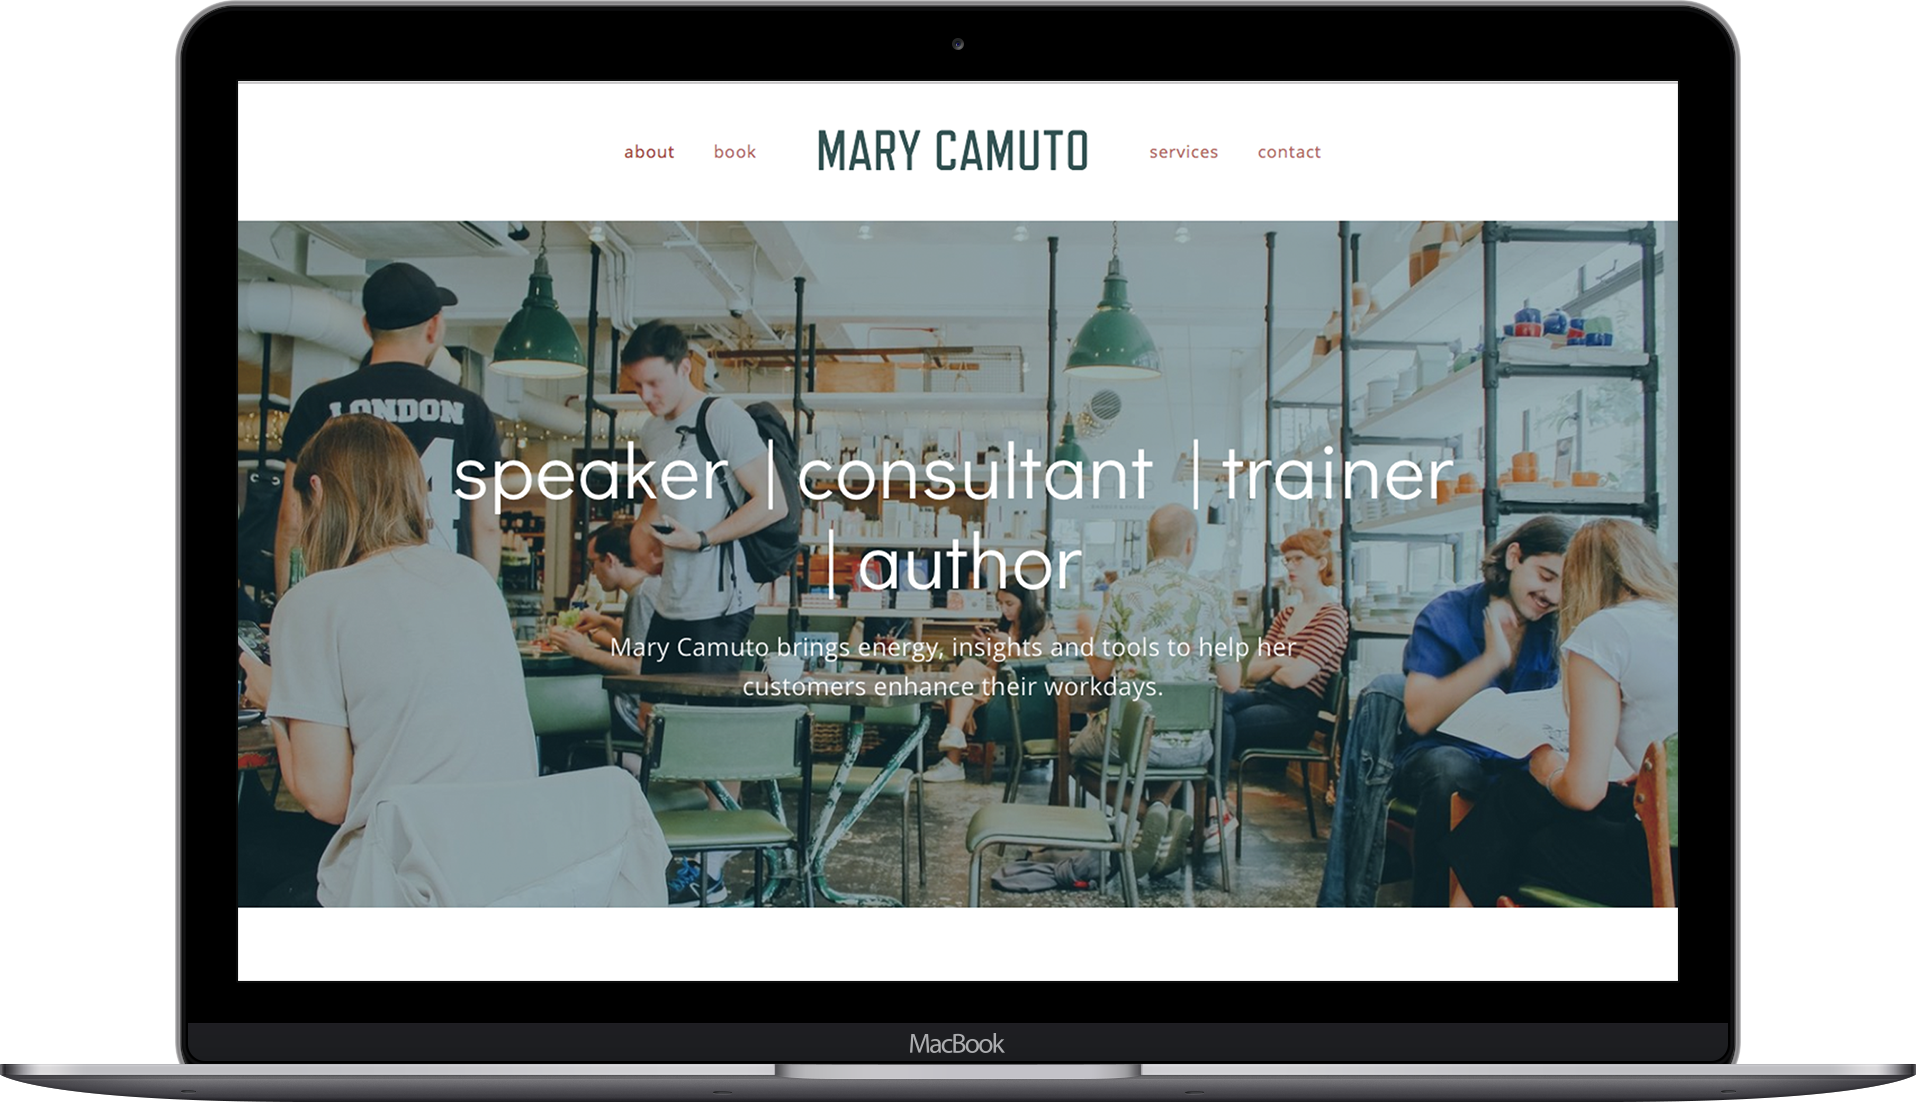 Laptop Mockup for Mary Camuto